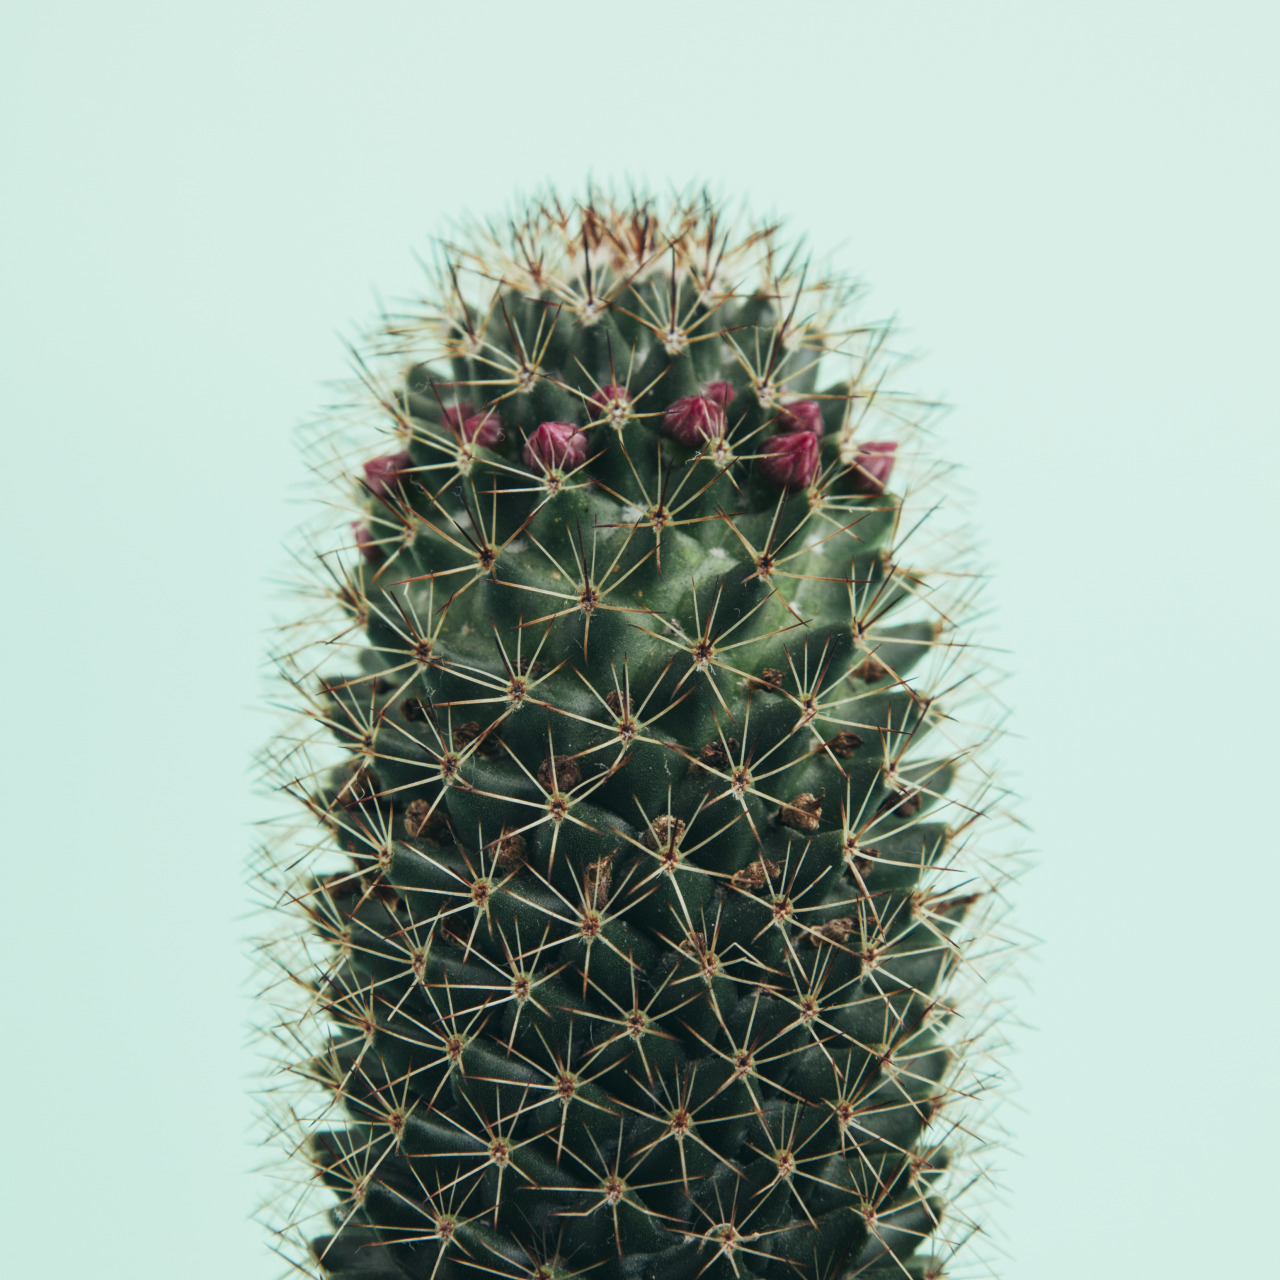 Plants Tumblr Cactus Cacti Typology Photographers On Tumblr Cacti And